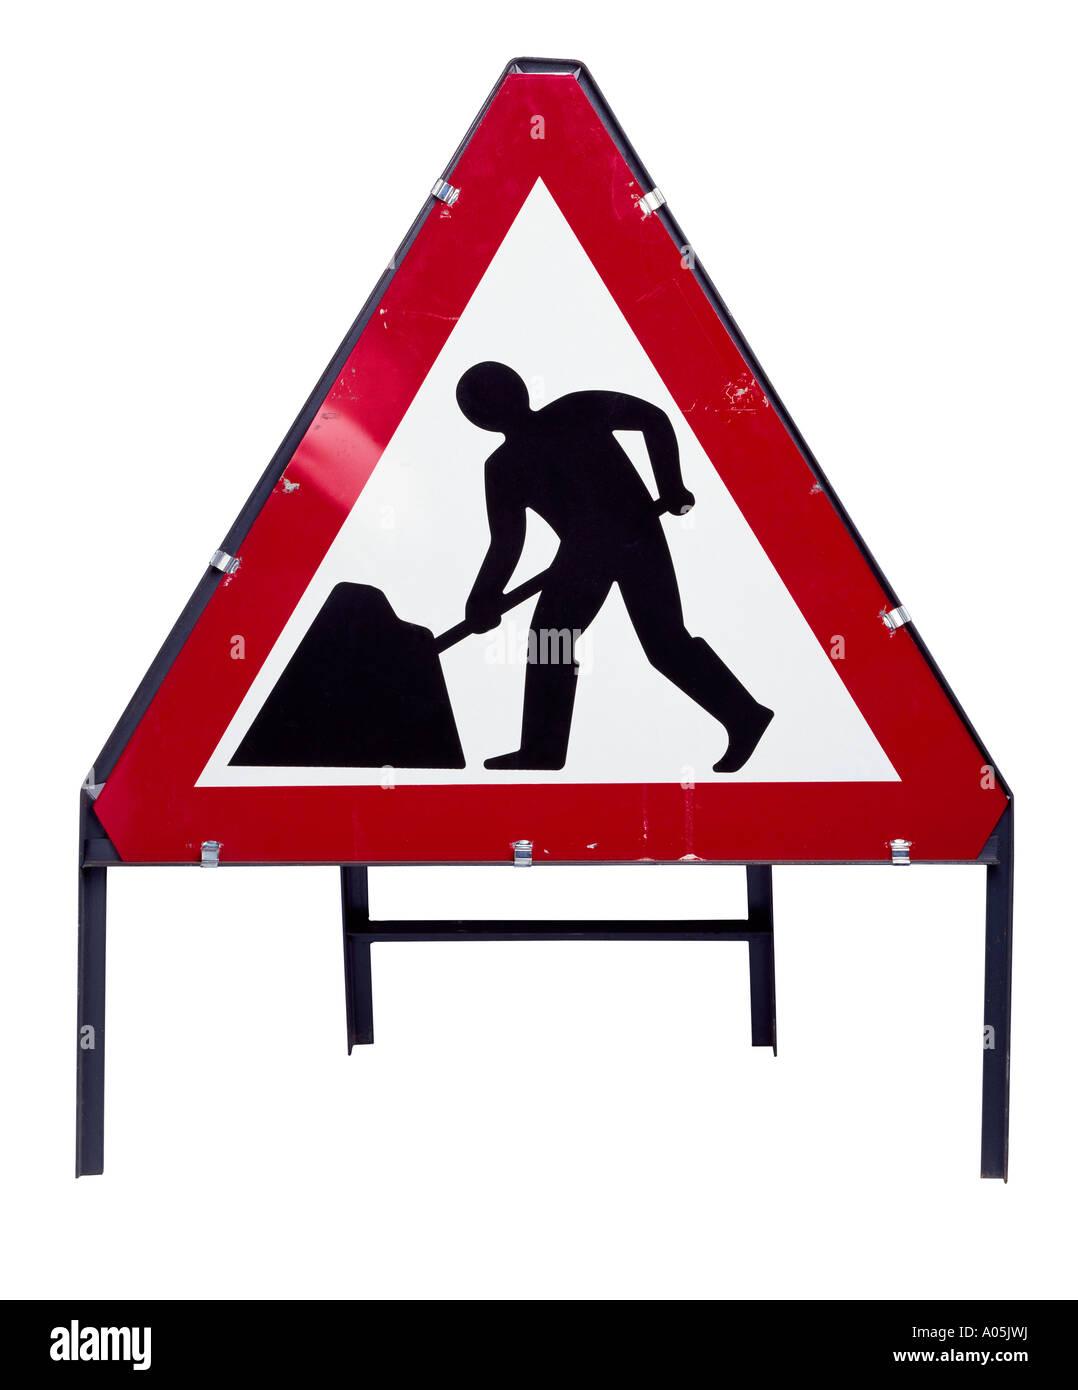 A cut out shot of road works road sign - Stock Image